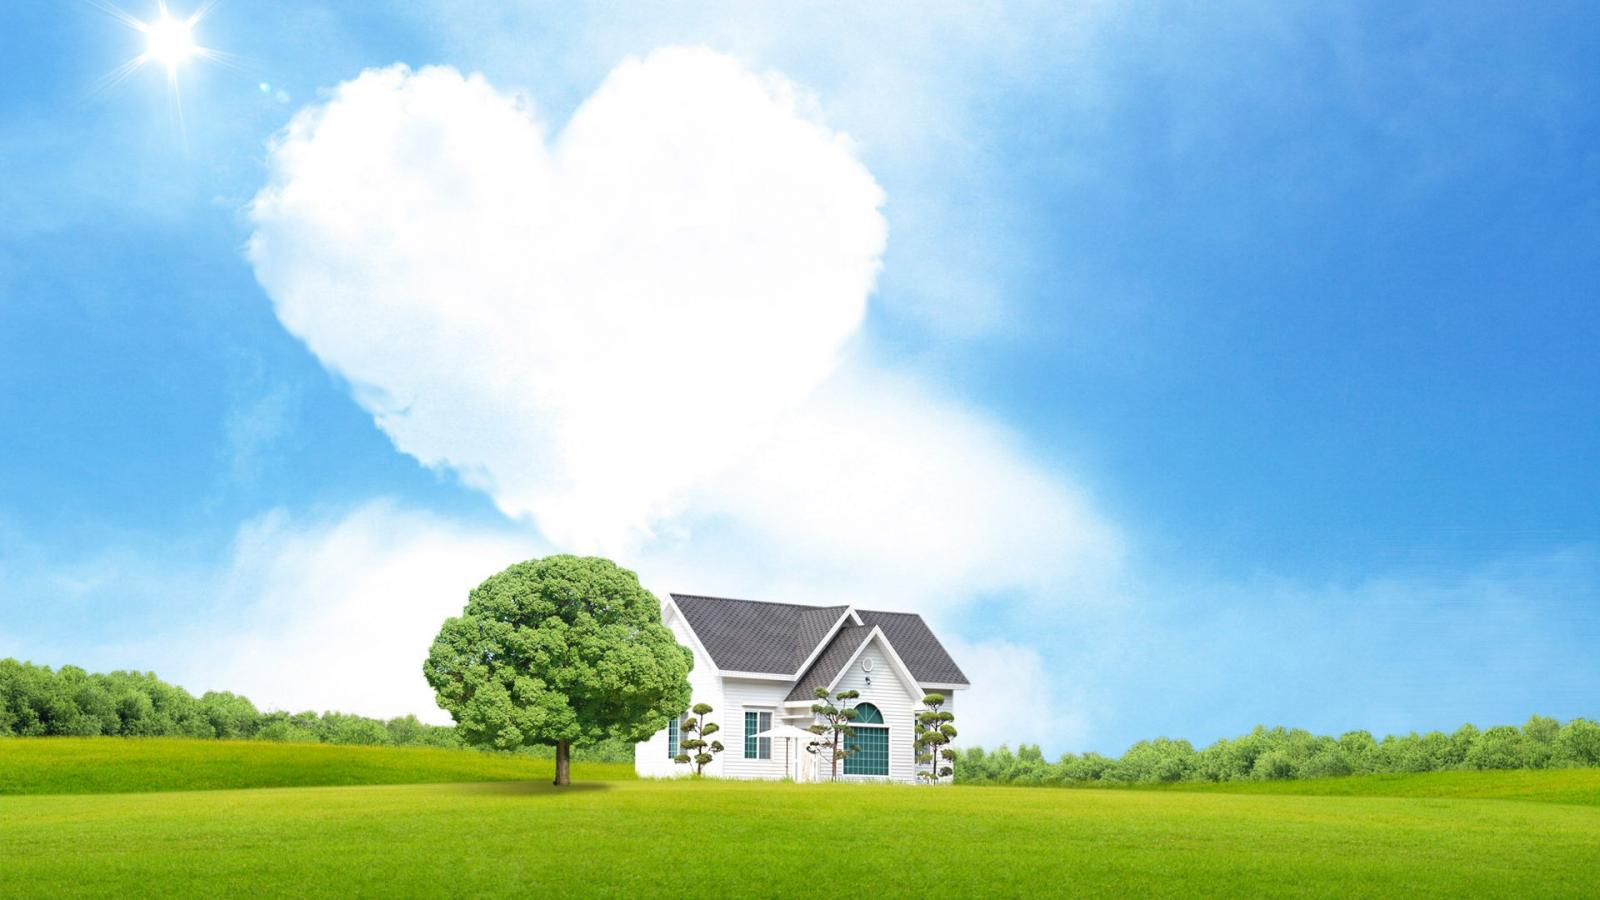 Good Morning Animation Wallpaper Heart Shaped Cloud 16 Of 57 Love Cloud And House Hd